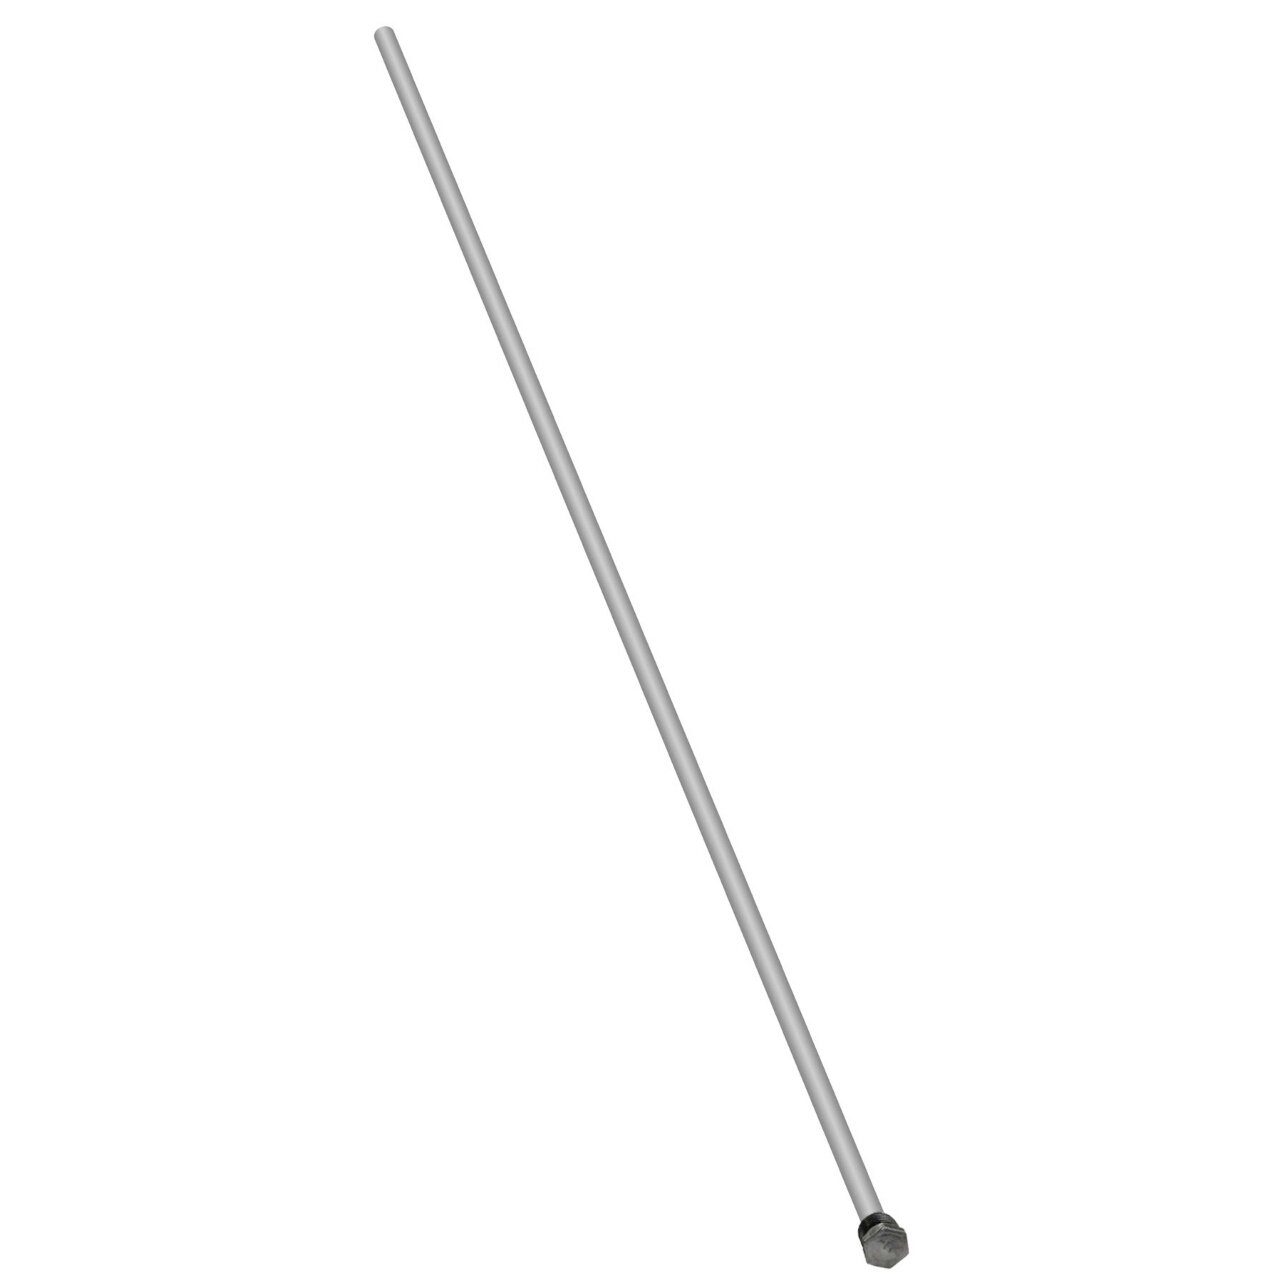 Rheem AP12938 Anode Rod, 0.625-Inch Diameter by 42-Inch long, Aluminum